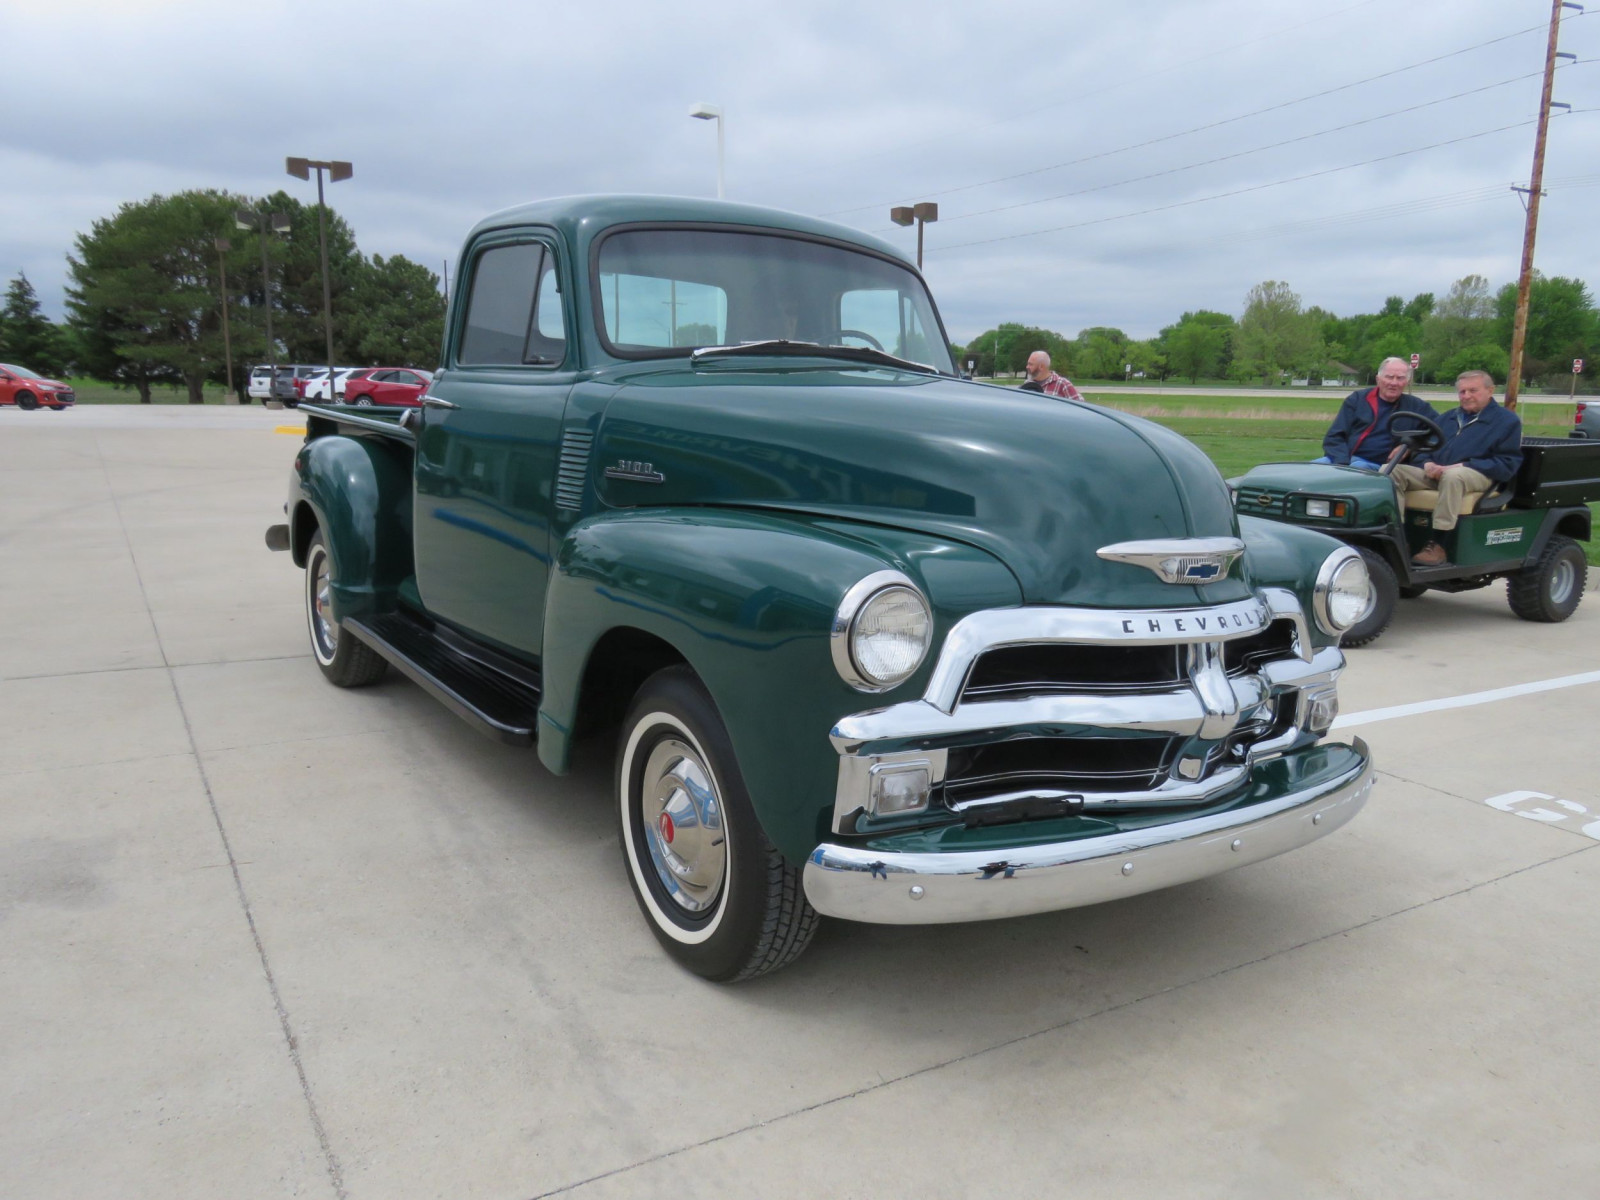 1954 Chevrolet 3100 Series Pickup - Image 4